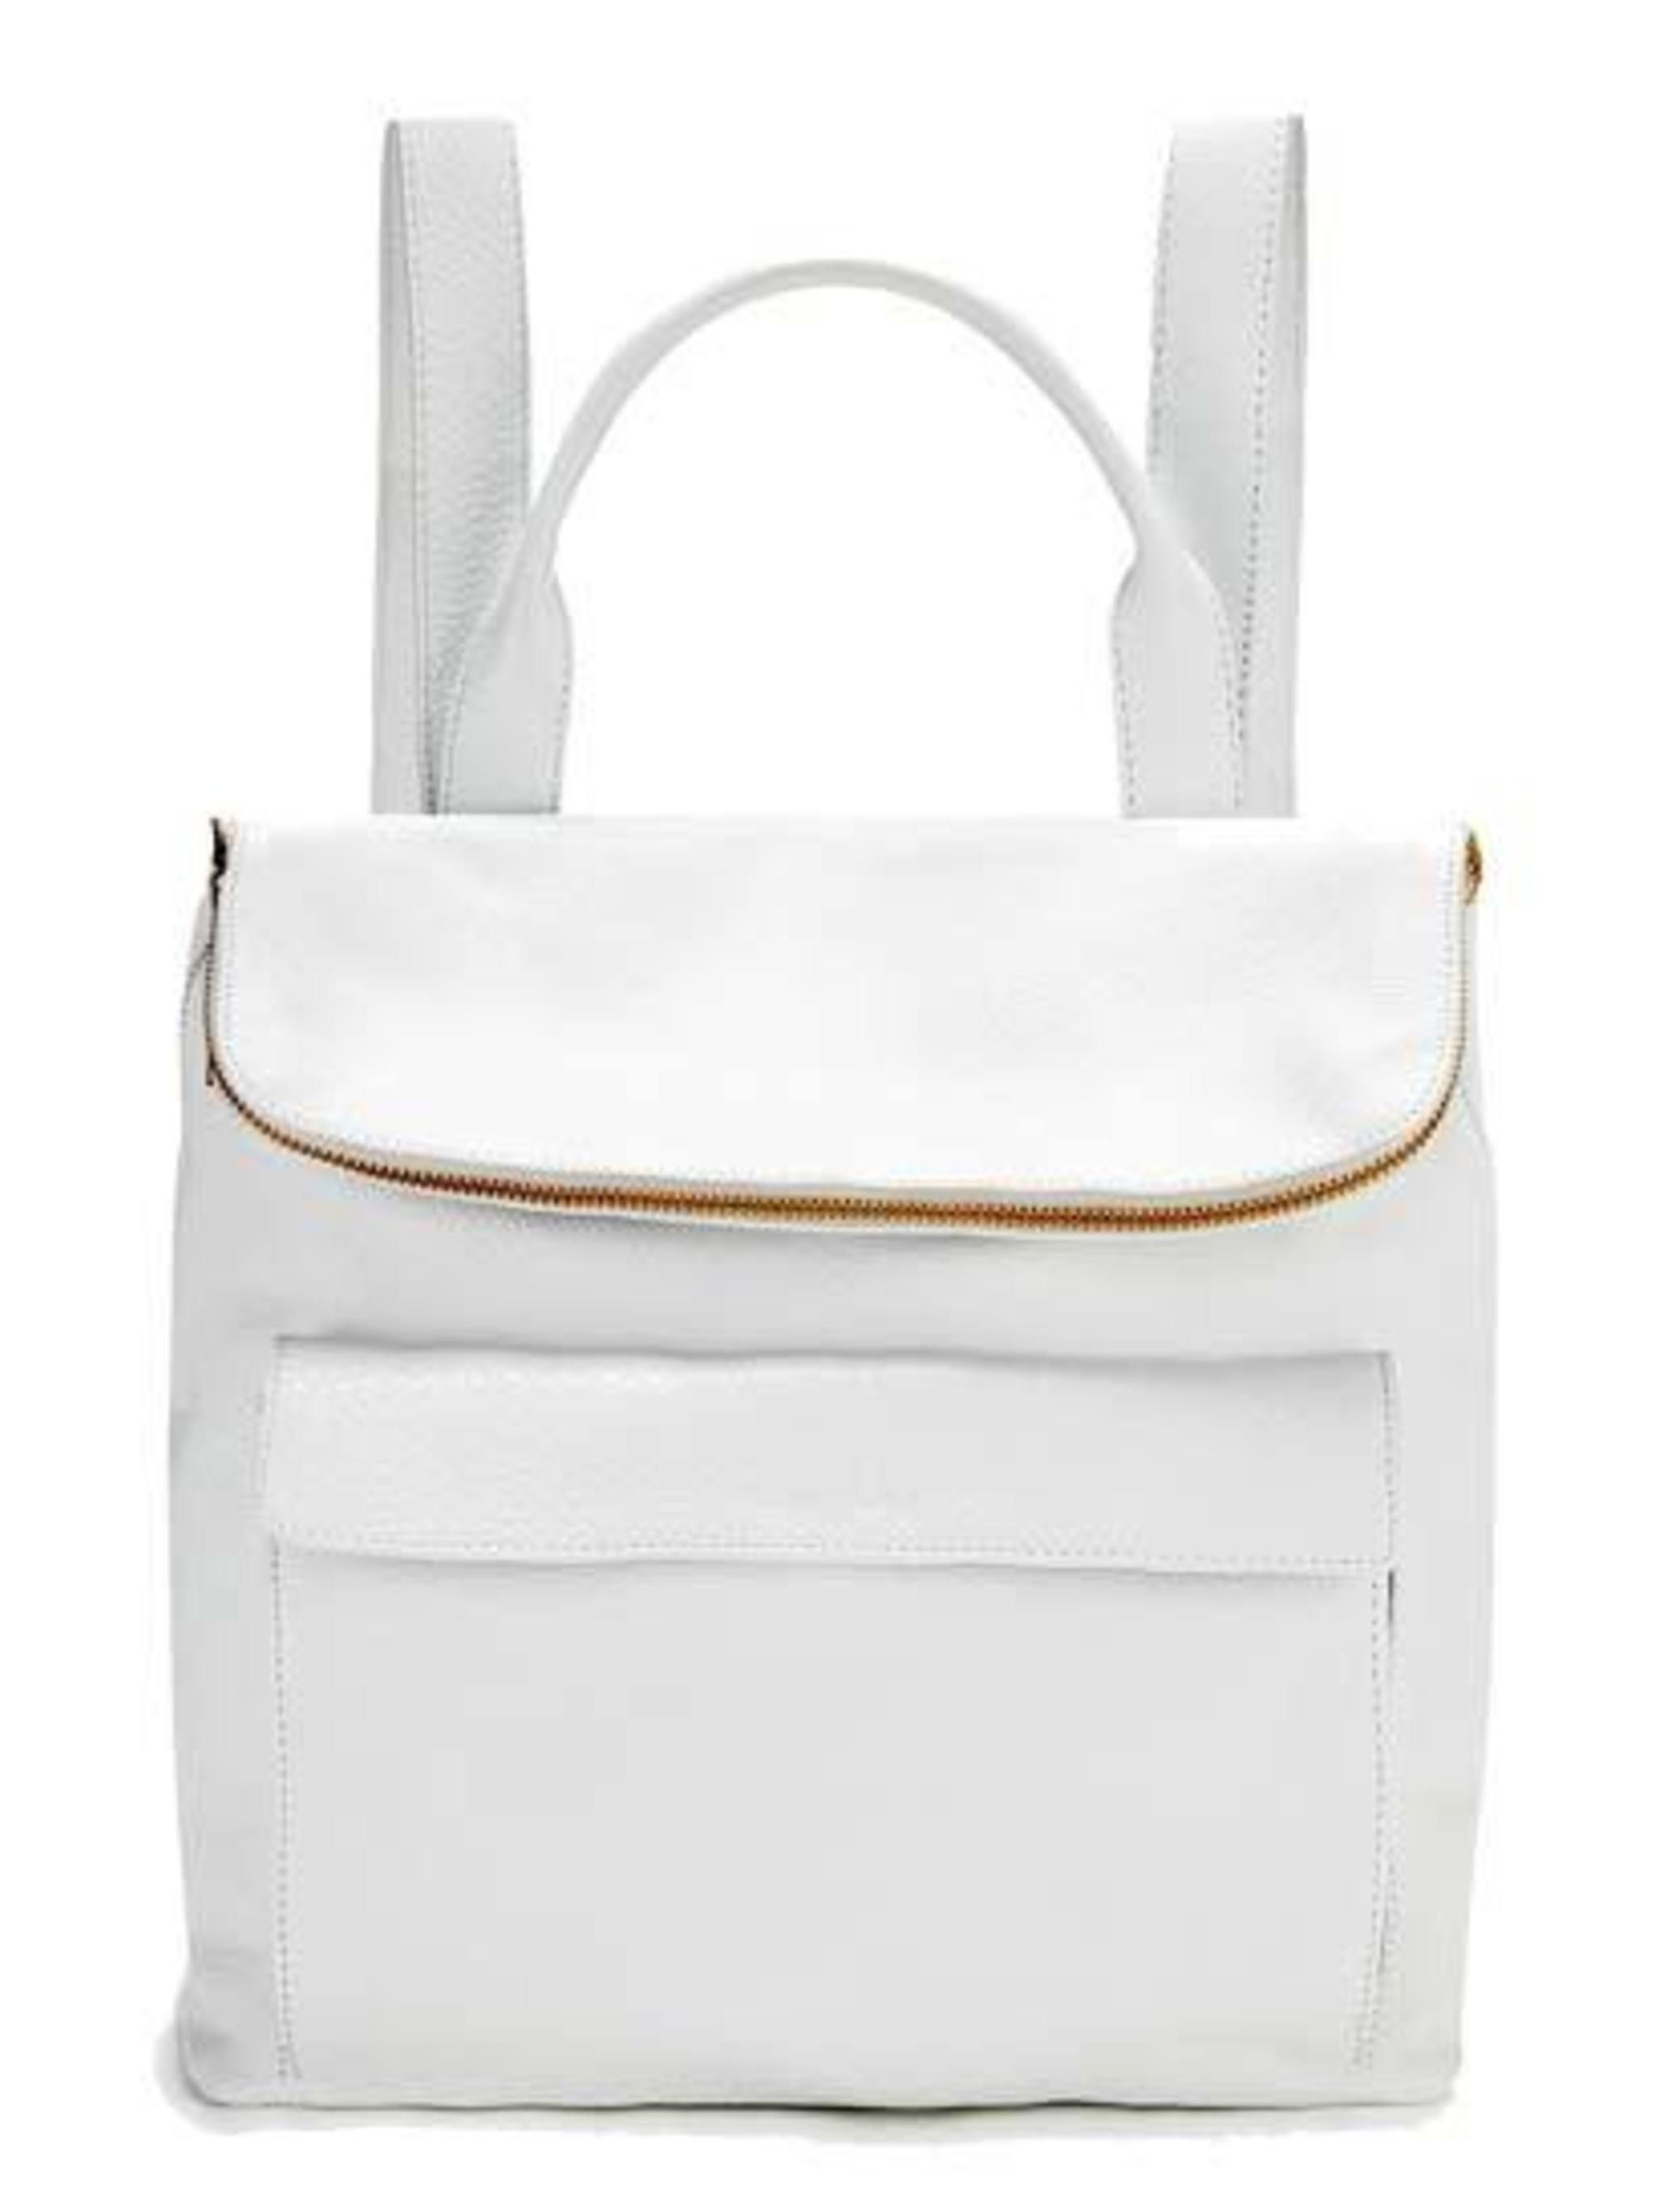 "<p>The future's bright white..</p><p>White Leather Backpack £275 from<a href=""http://www.whistles.co.uk/fcp/categorylist/dept/accessories-bags?resetFilters=true""> Whistles </a></p>"